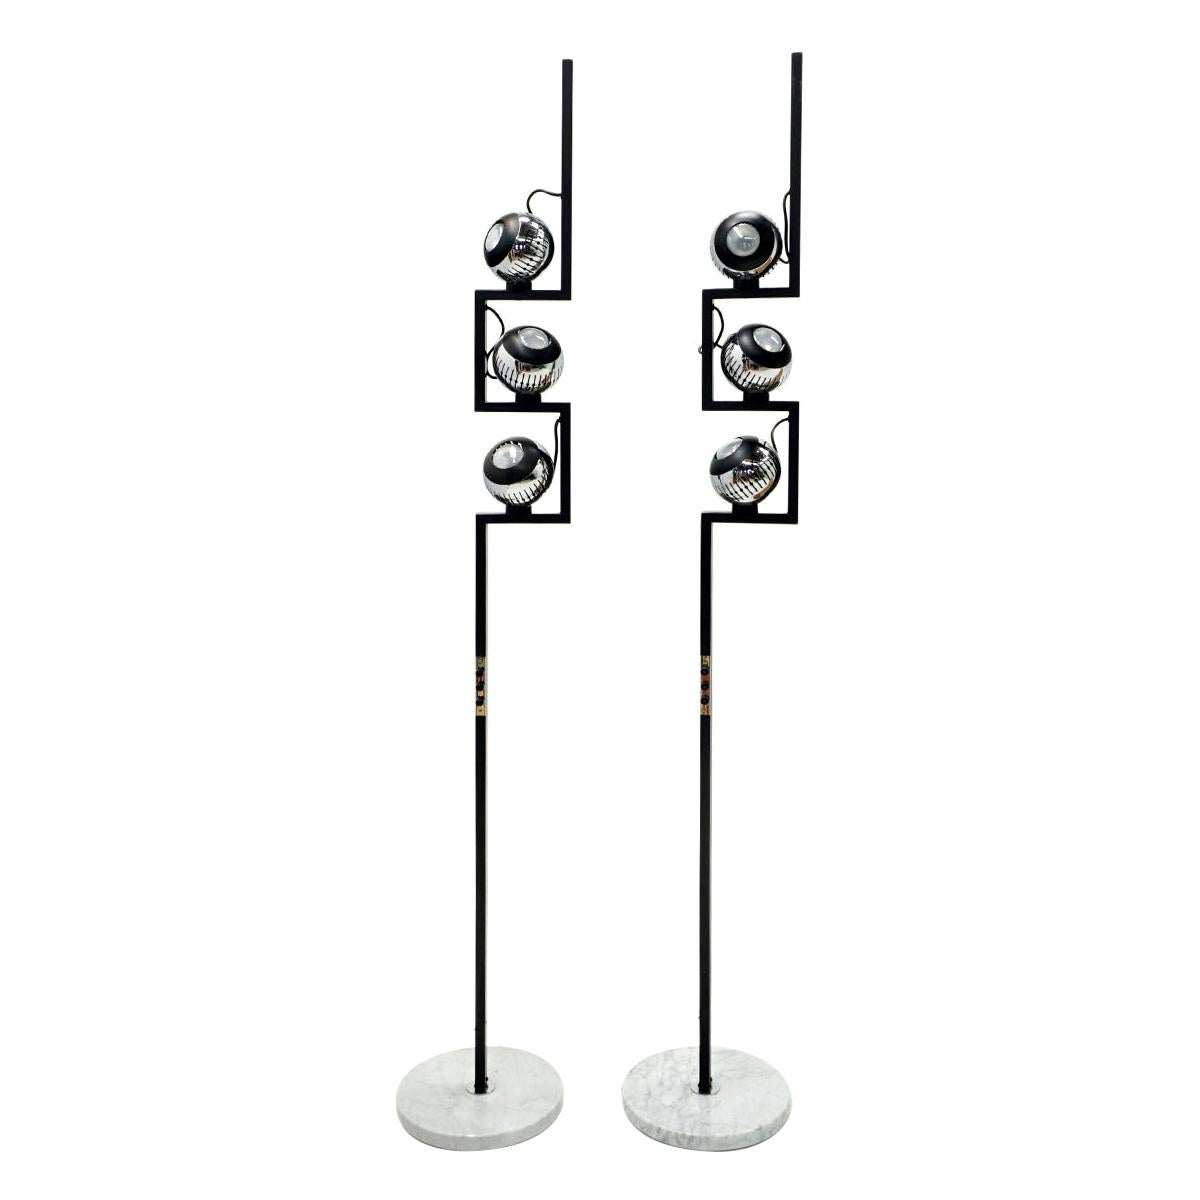 Pair of Floor Lamps by Angelo Lelii for Arredoluce, Chrome, Marble, Articulating